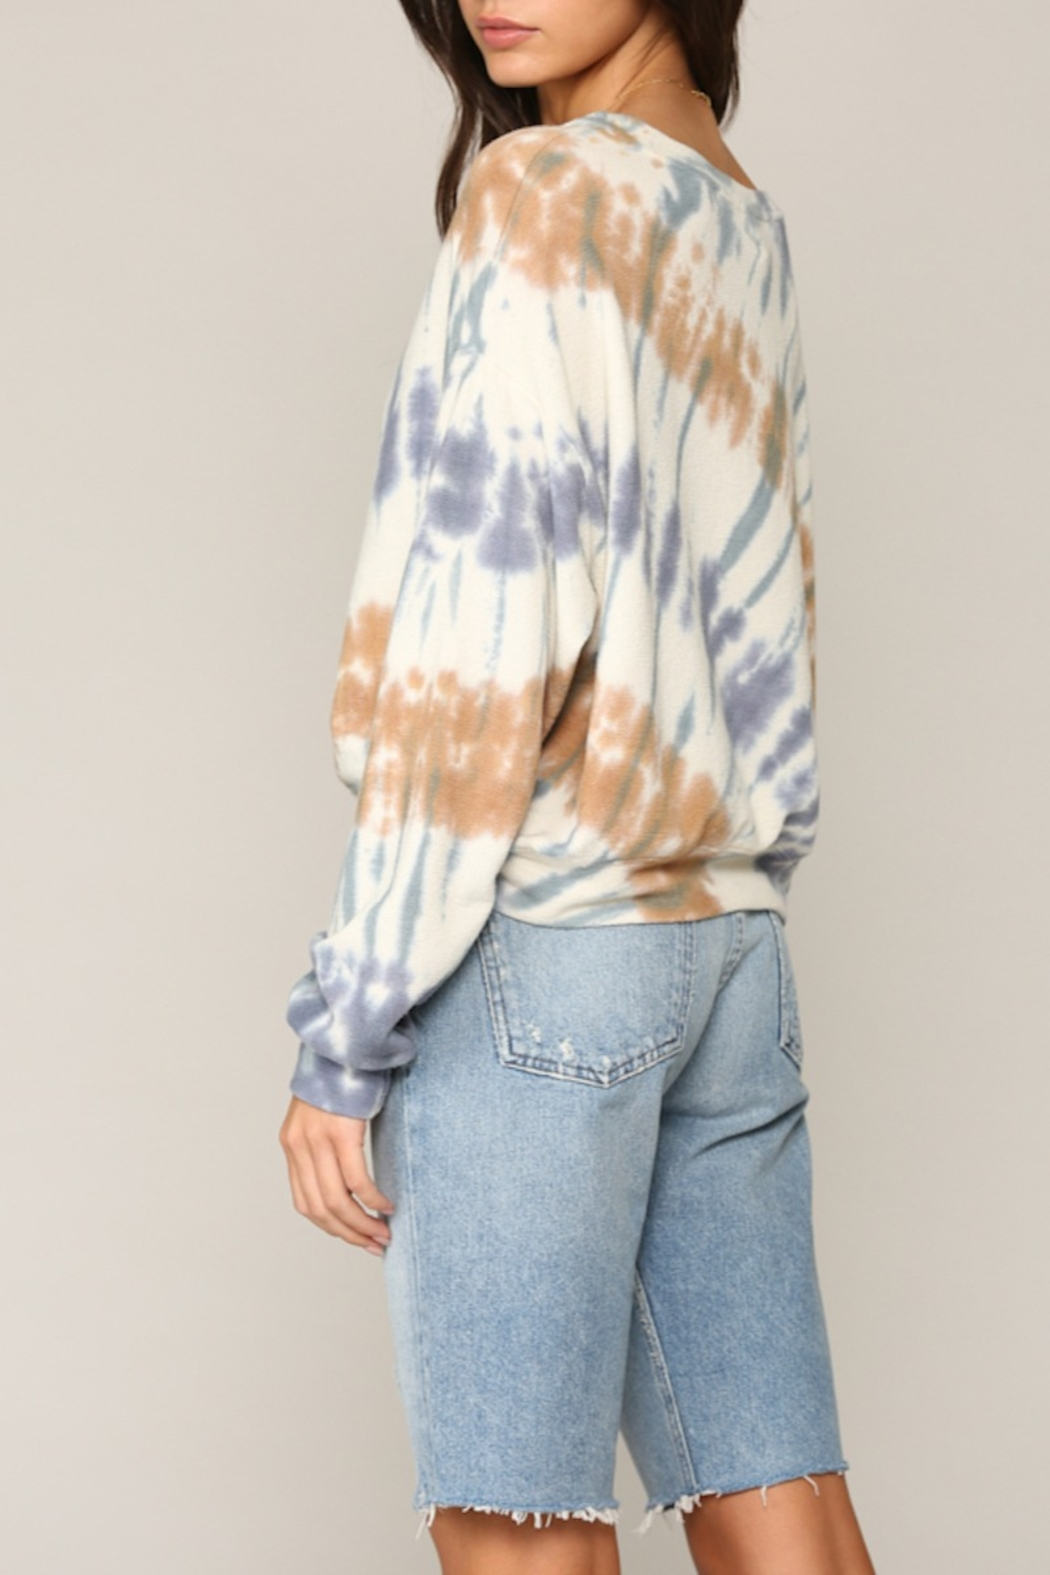 Blank Paige Arced TieDye Top - Side Cropped Image